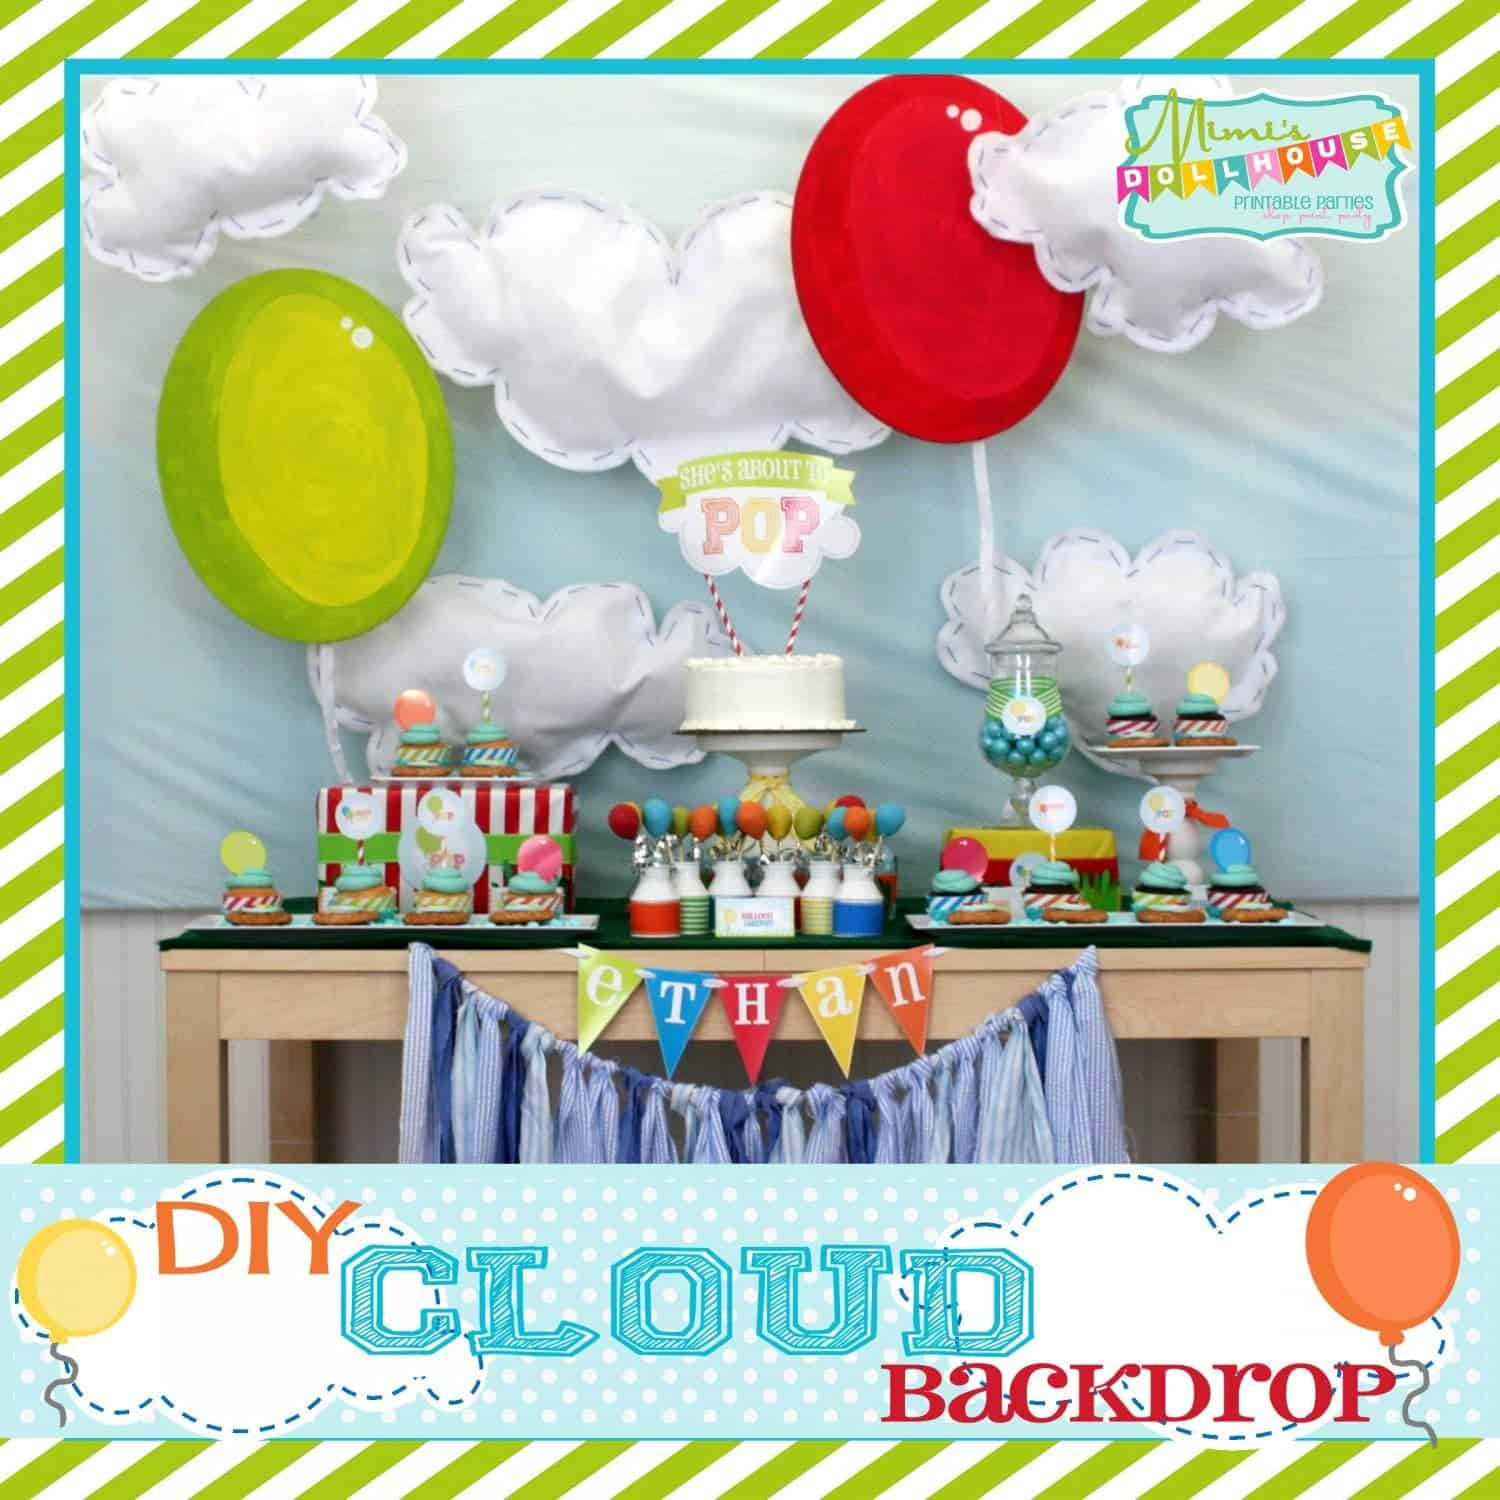 Balloon Baby Shower: DIY Cloud Tutorial